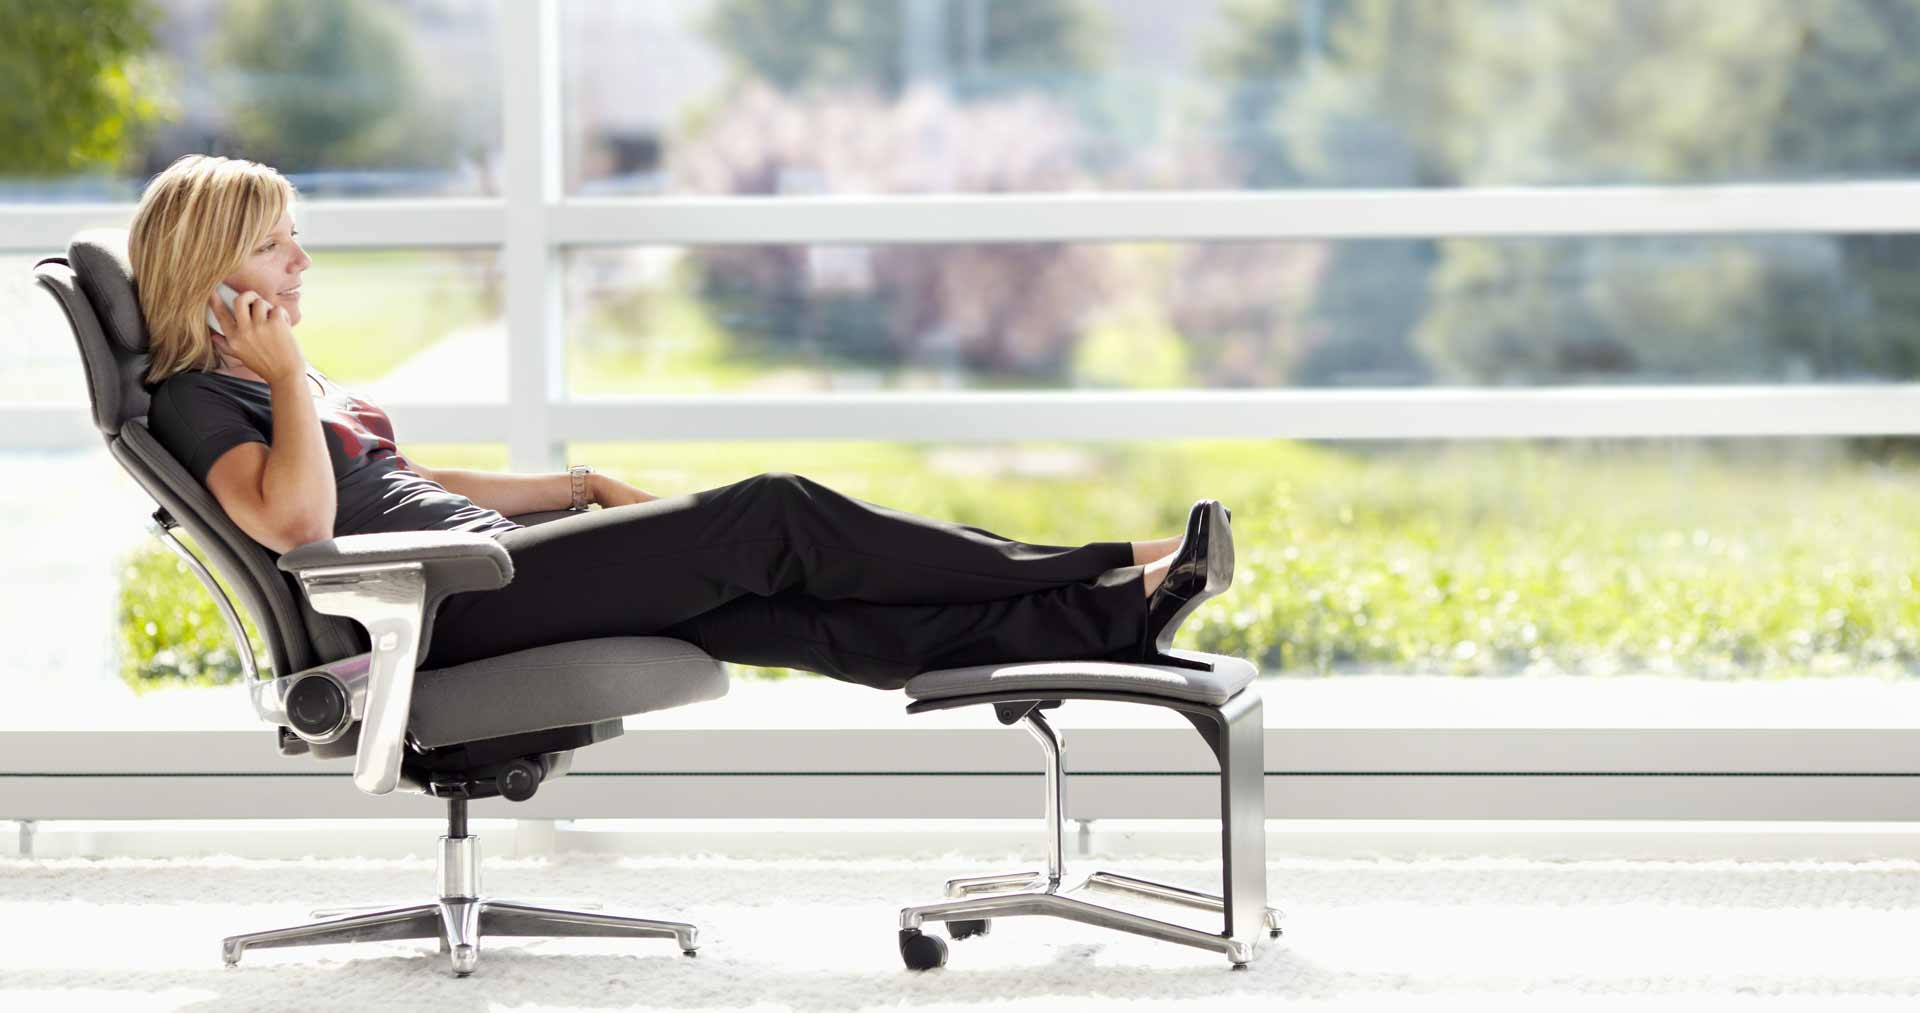 leap-worklounge-people-grey-11-0002871-dl16_